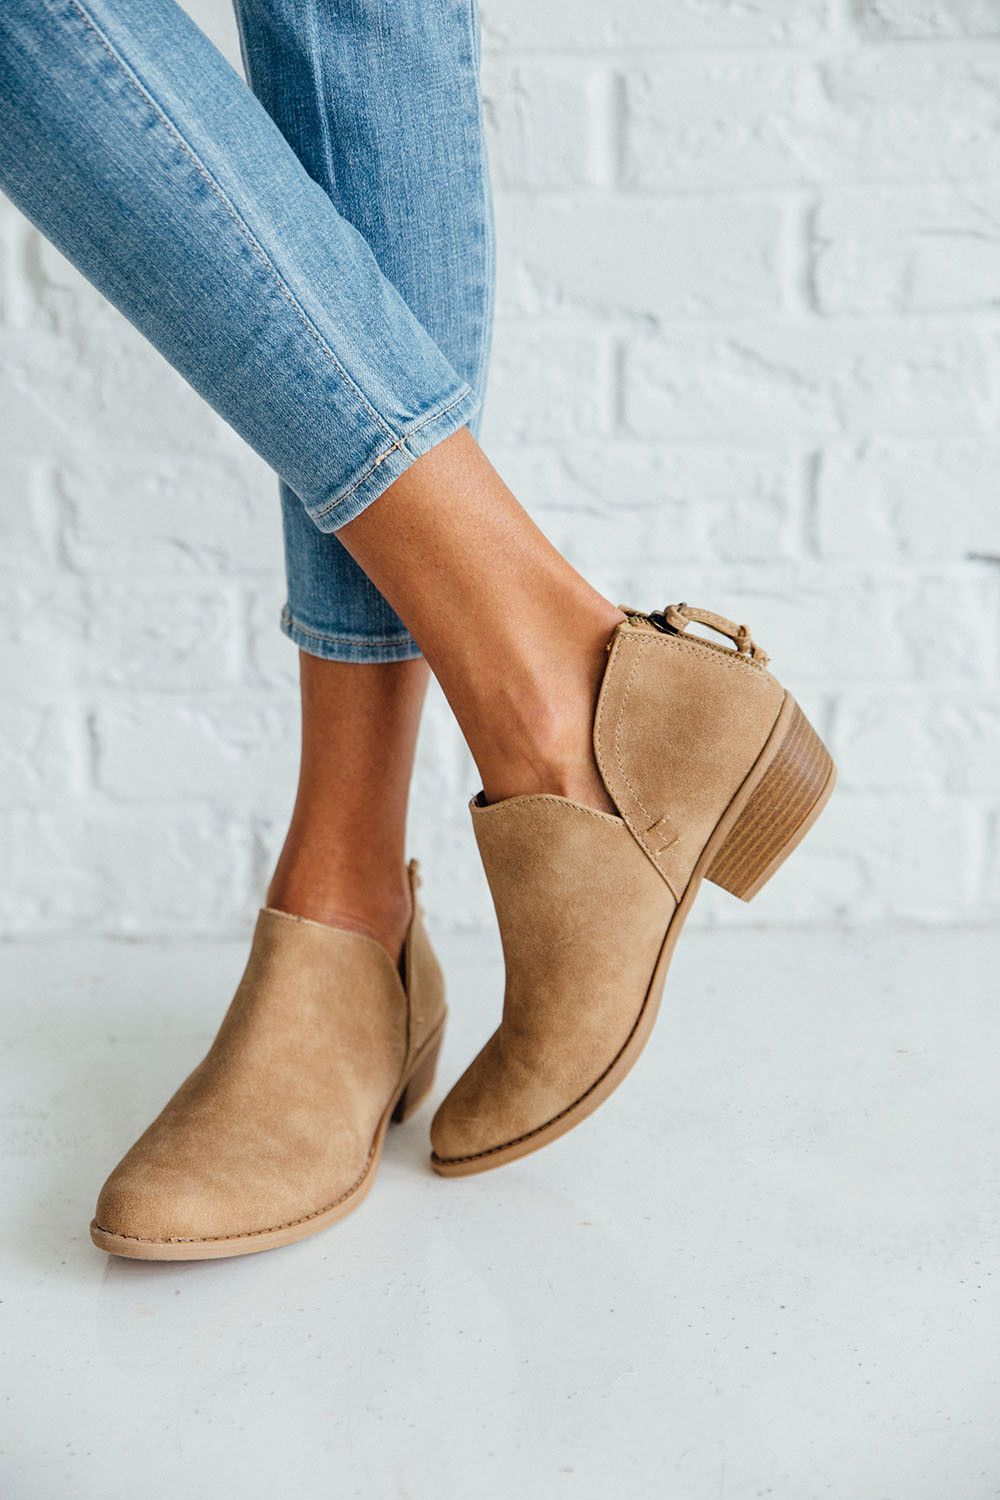 889373777a7 DETAILS  - Perfect Fall to Winter bootie to go with any outfit - Fits true  to size - Light Brown Color - Zipper Back Booties with V Cut sides - Very  ...